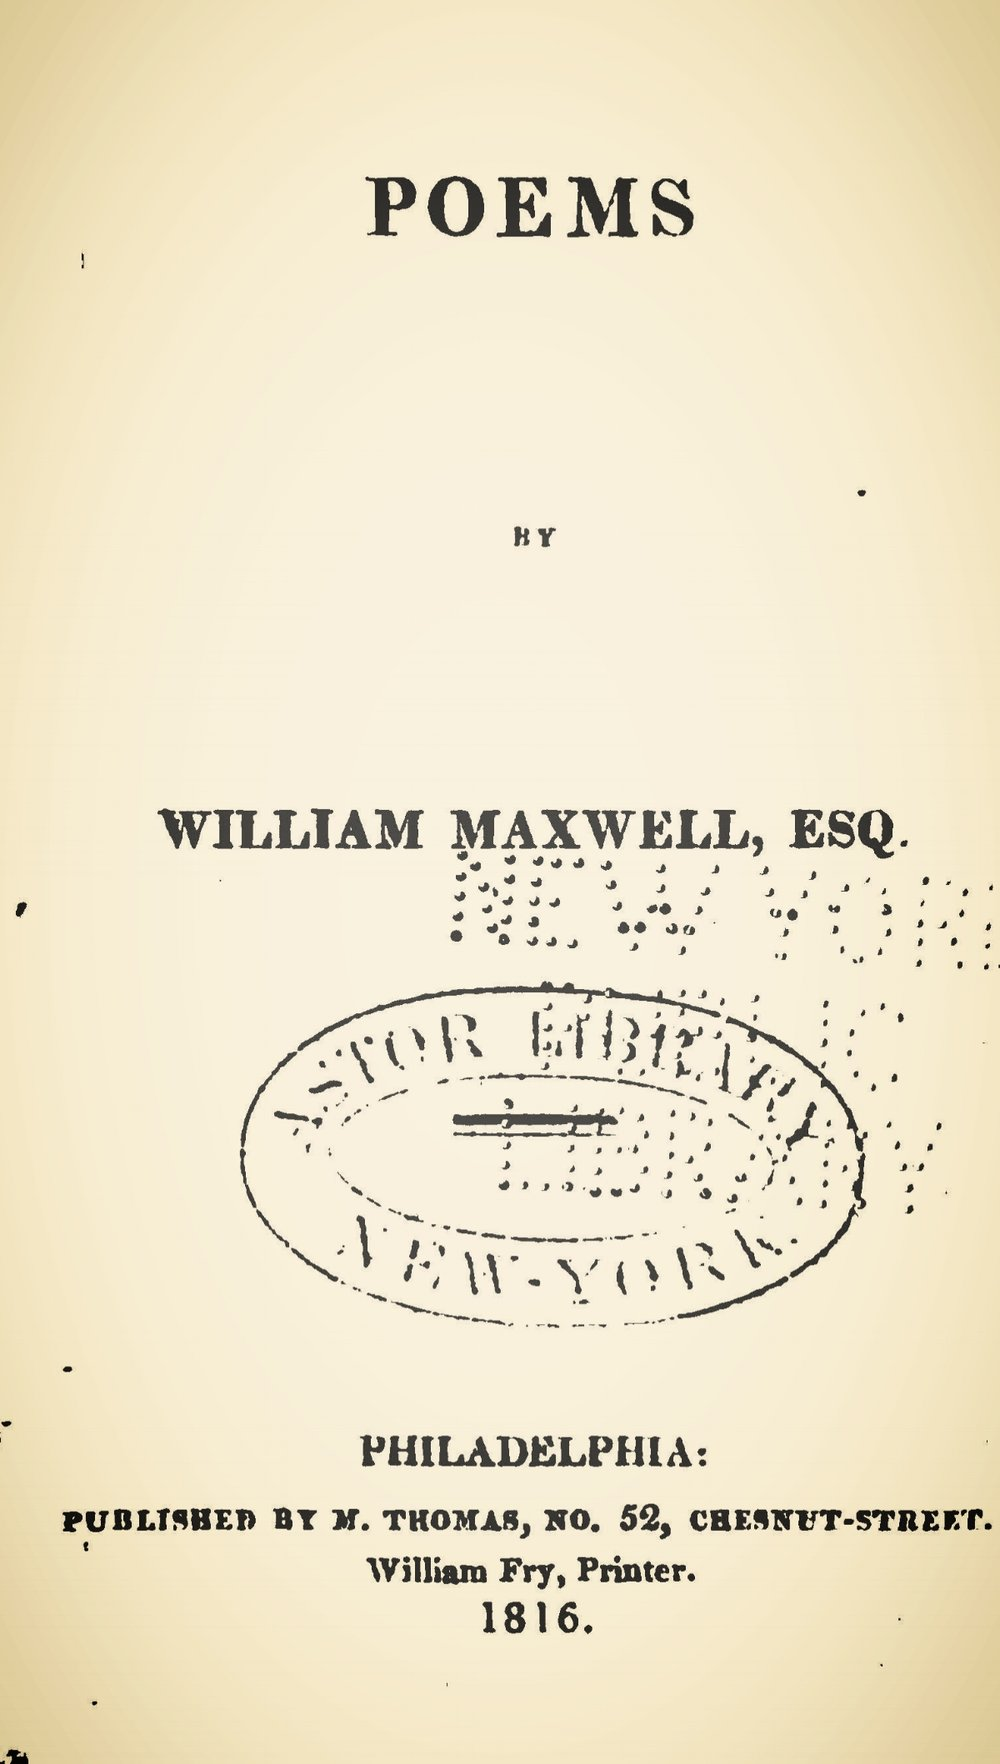 Maxwell, William, Poems Title Page.jpg